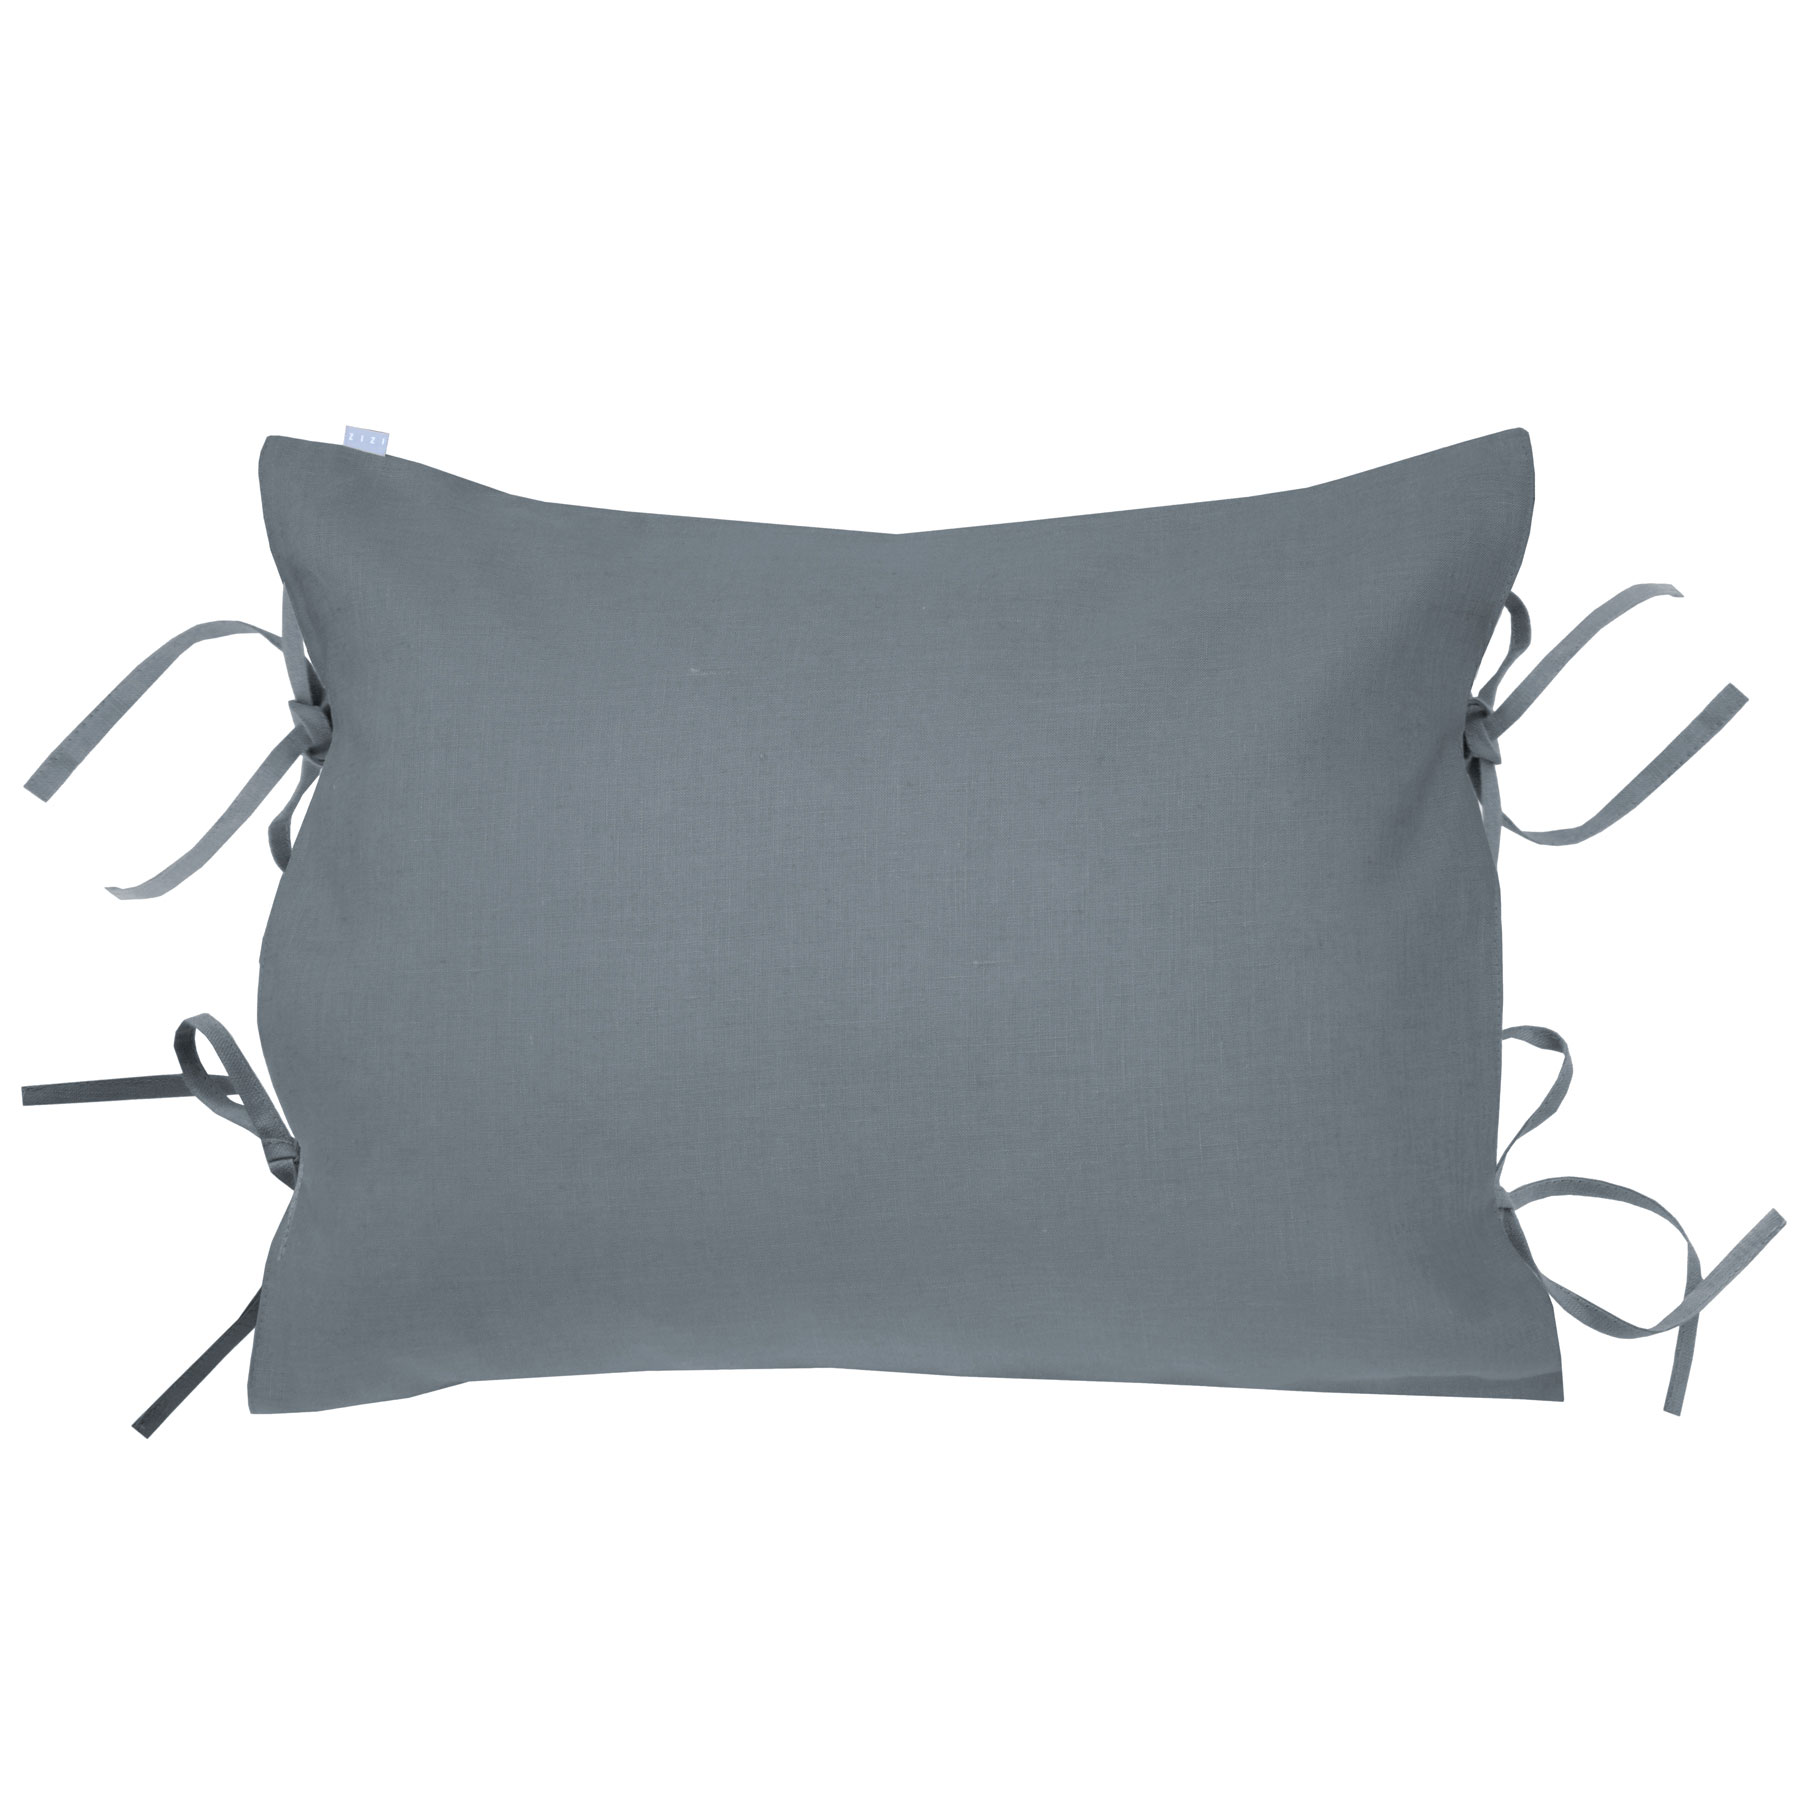 PILLOWCASE OSCAR <br />quicksilver gray